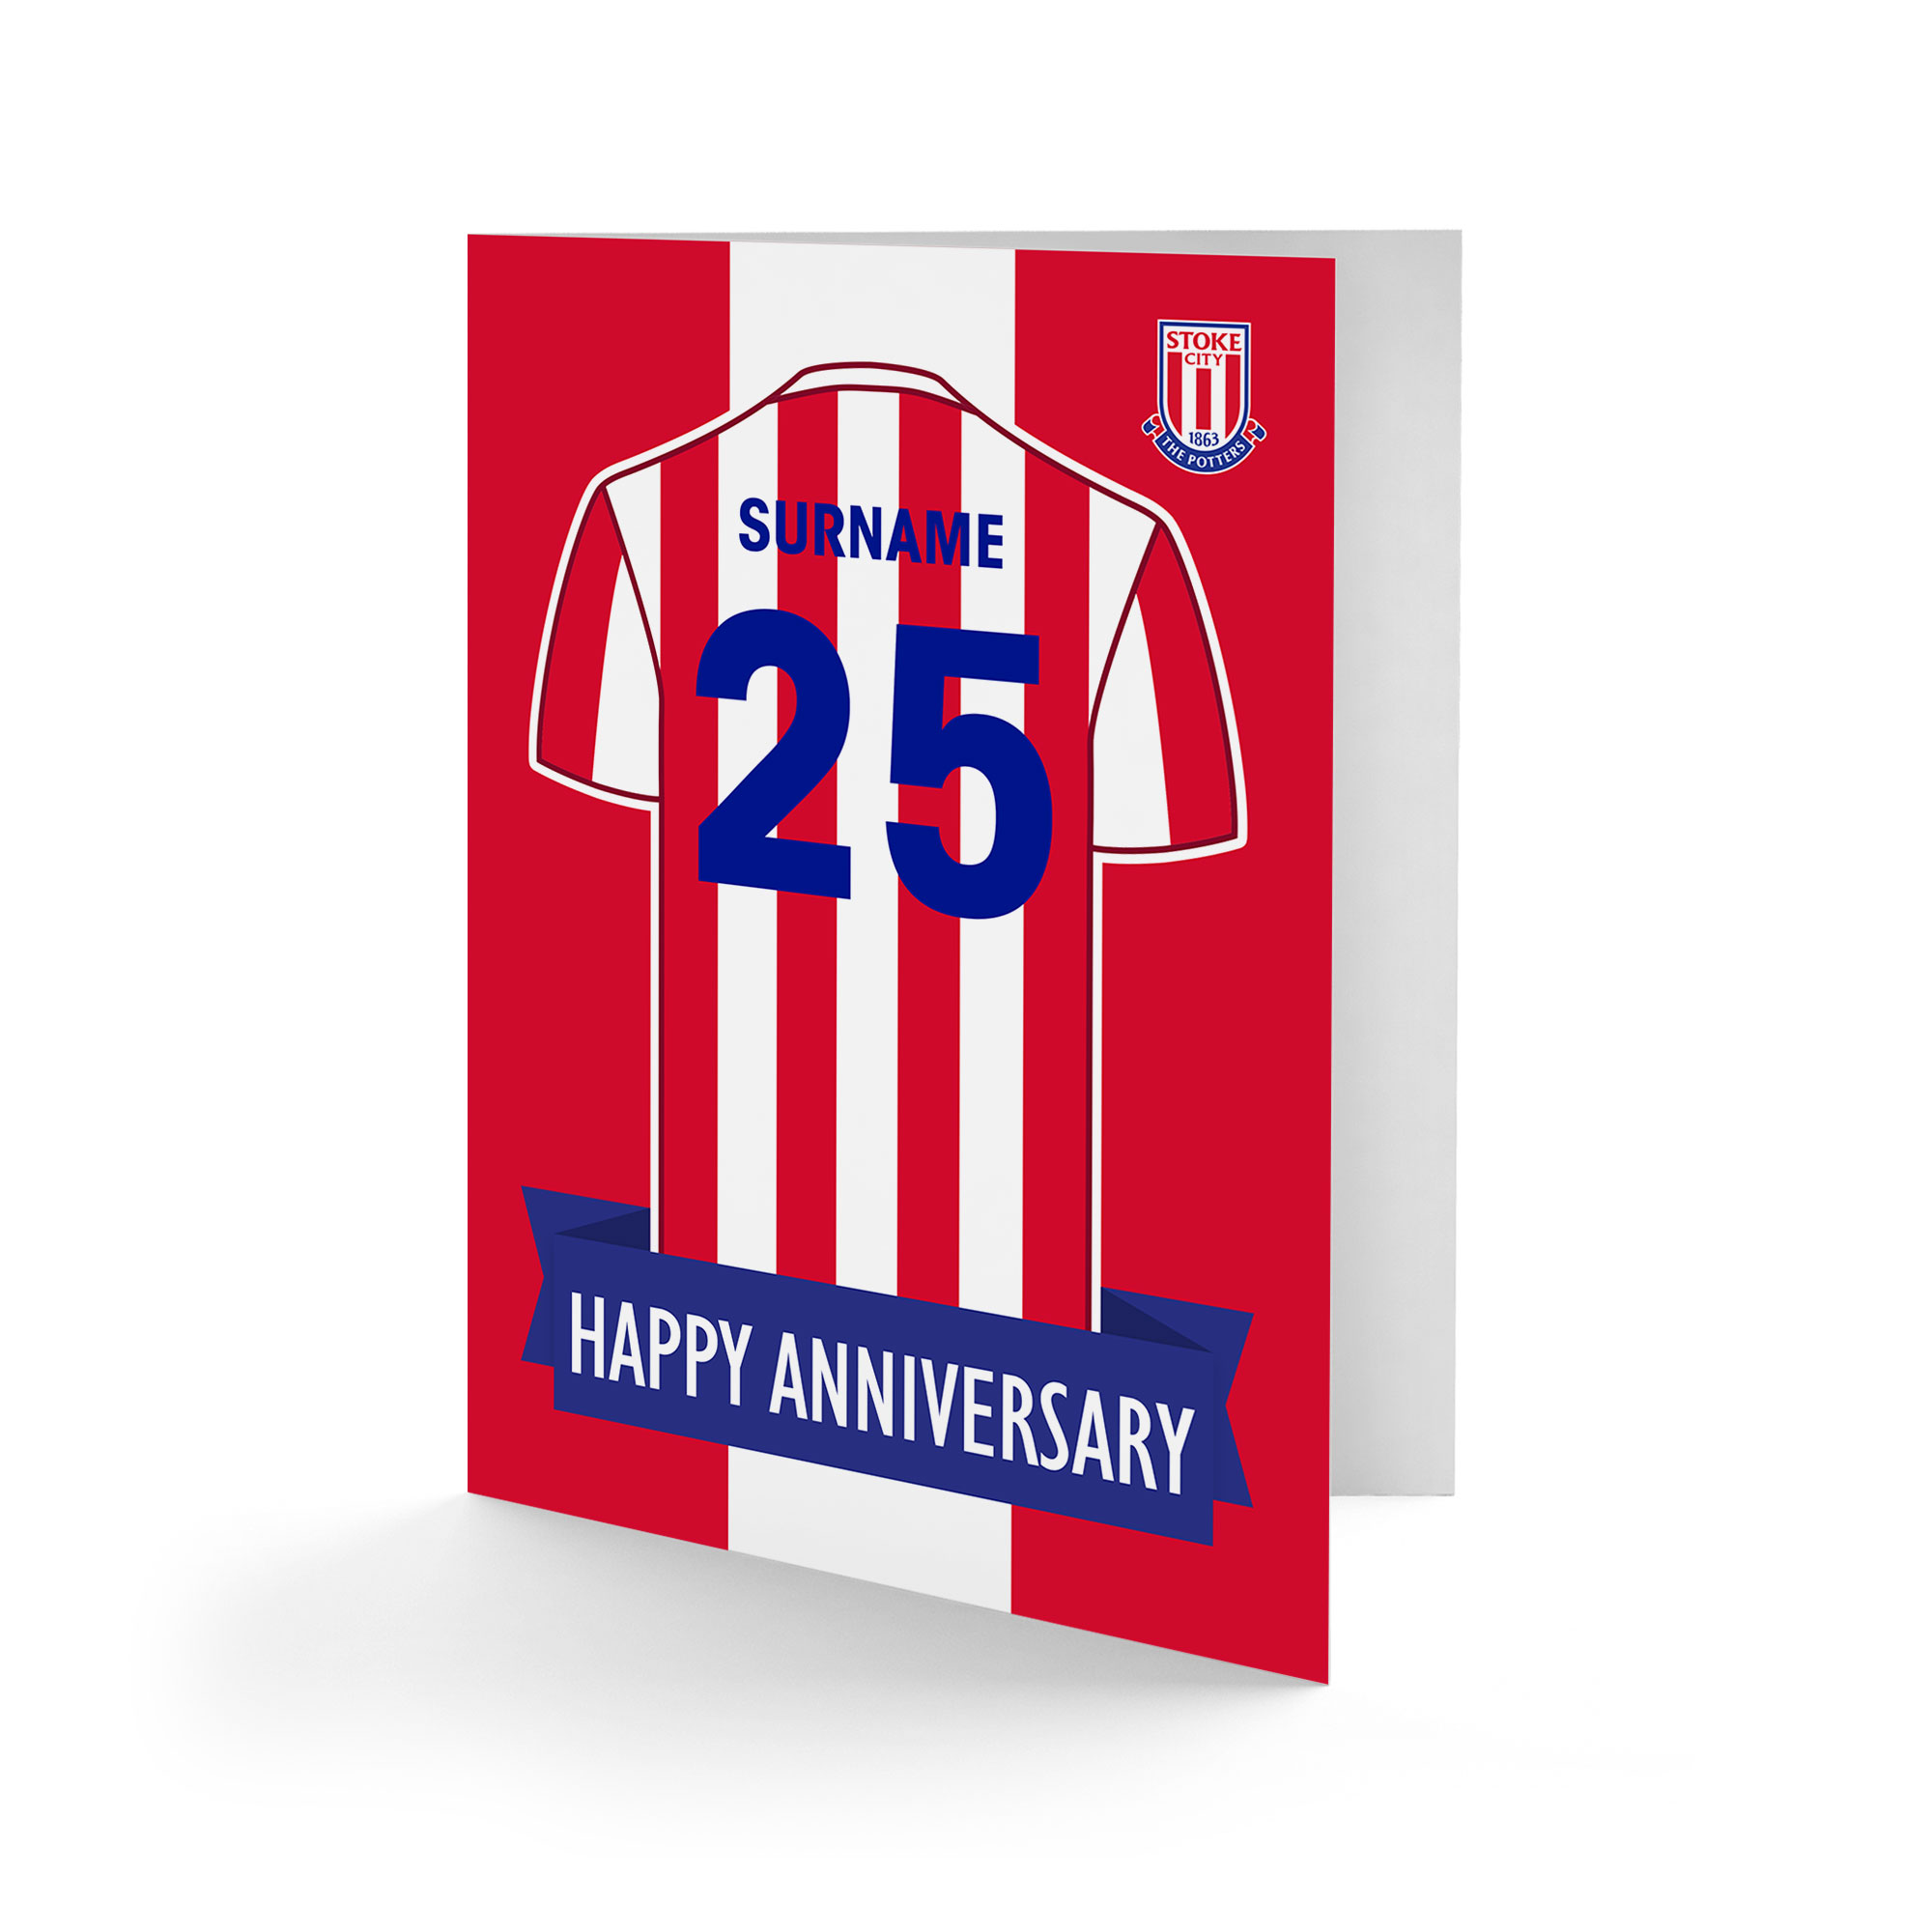 Stoke City FC Shirt Anniversary Card